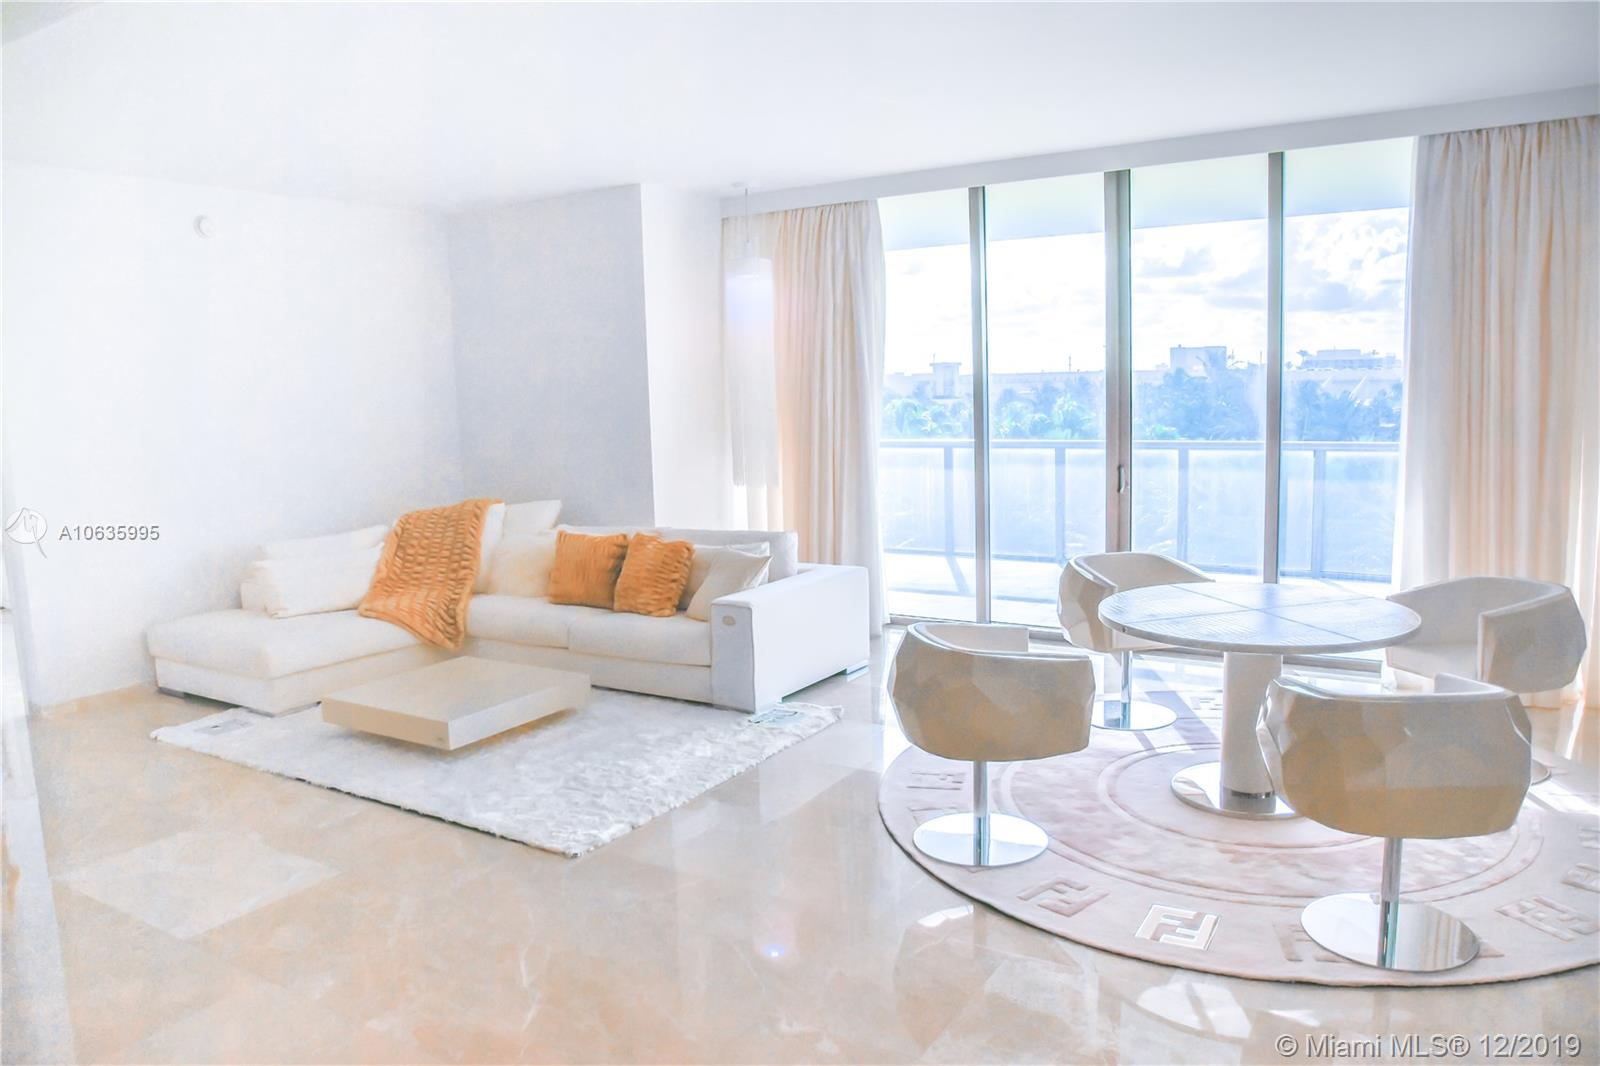 9701 Collins Avenue # 405S, Bal Harbour, Florida 33154, 2 Bedrooms Bedrooms, ,3 BathroomsBathrooms,Residential Lease,For Rent,9701 Collins Avenue # 405S,A10635995